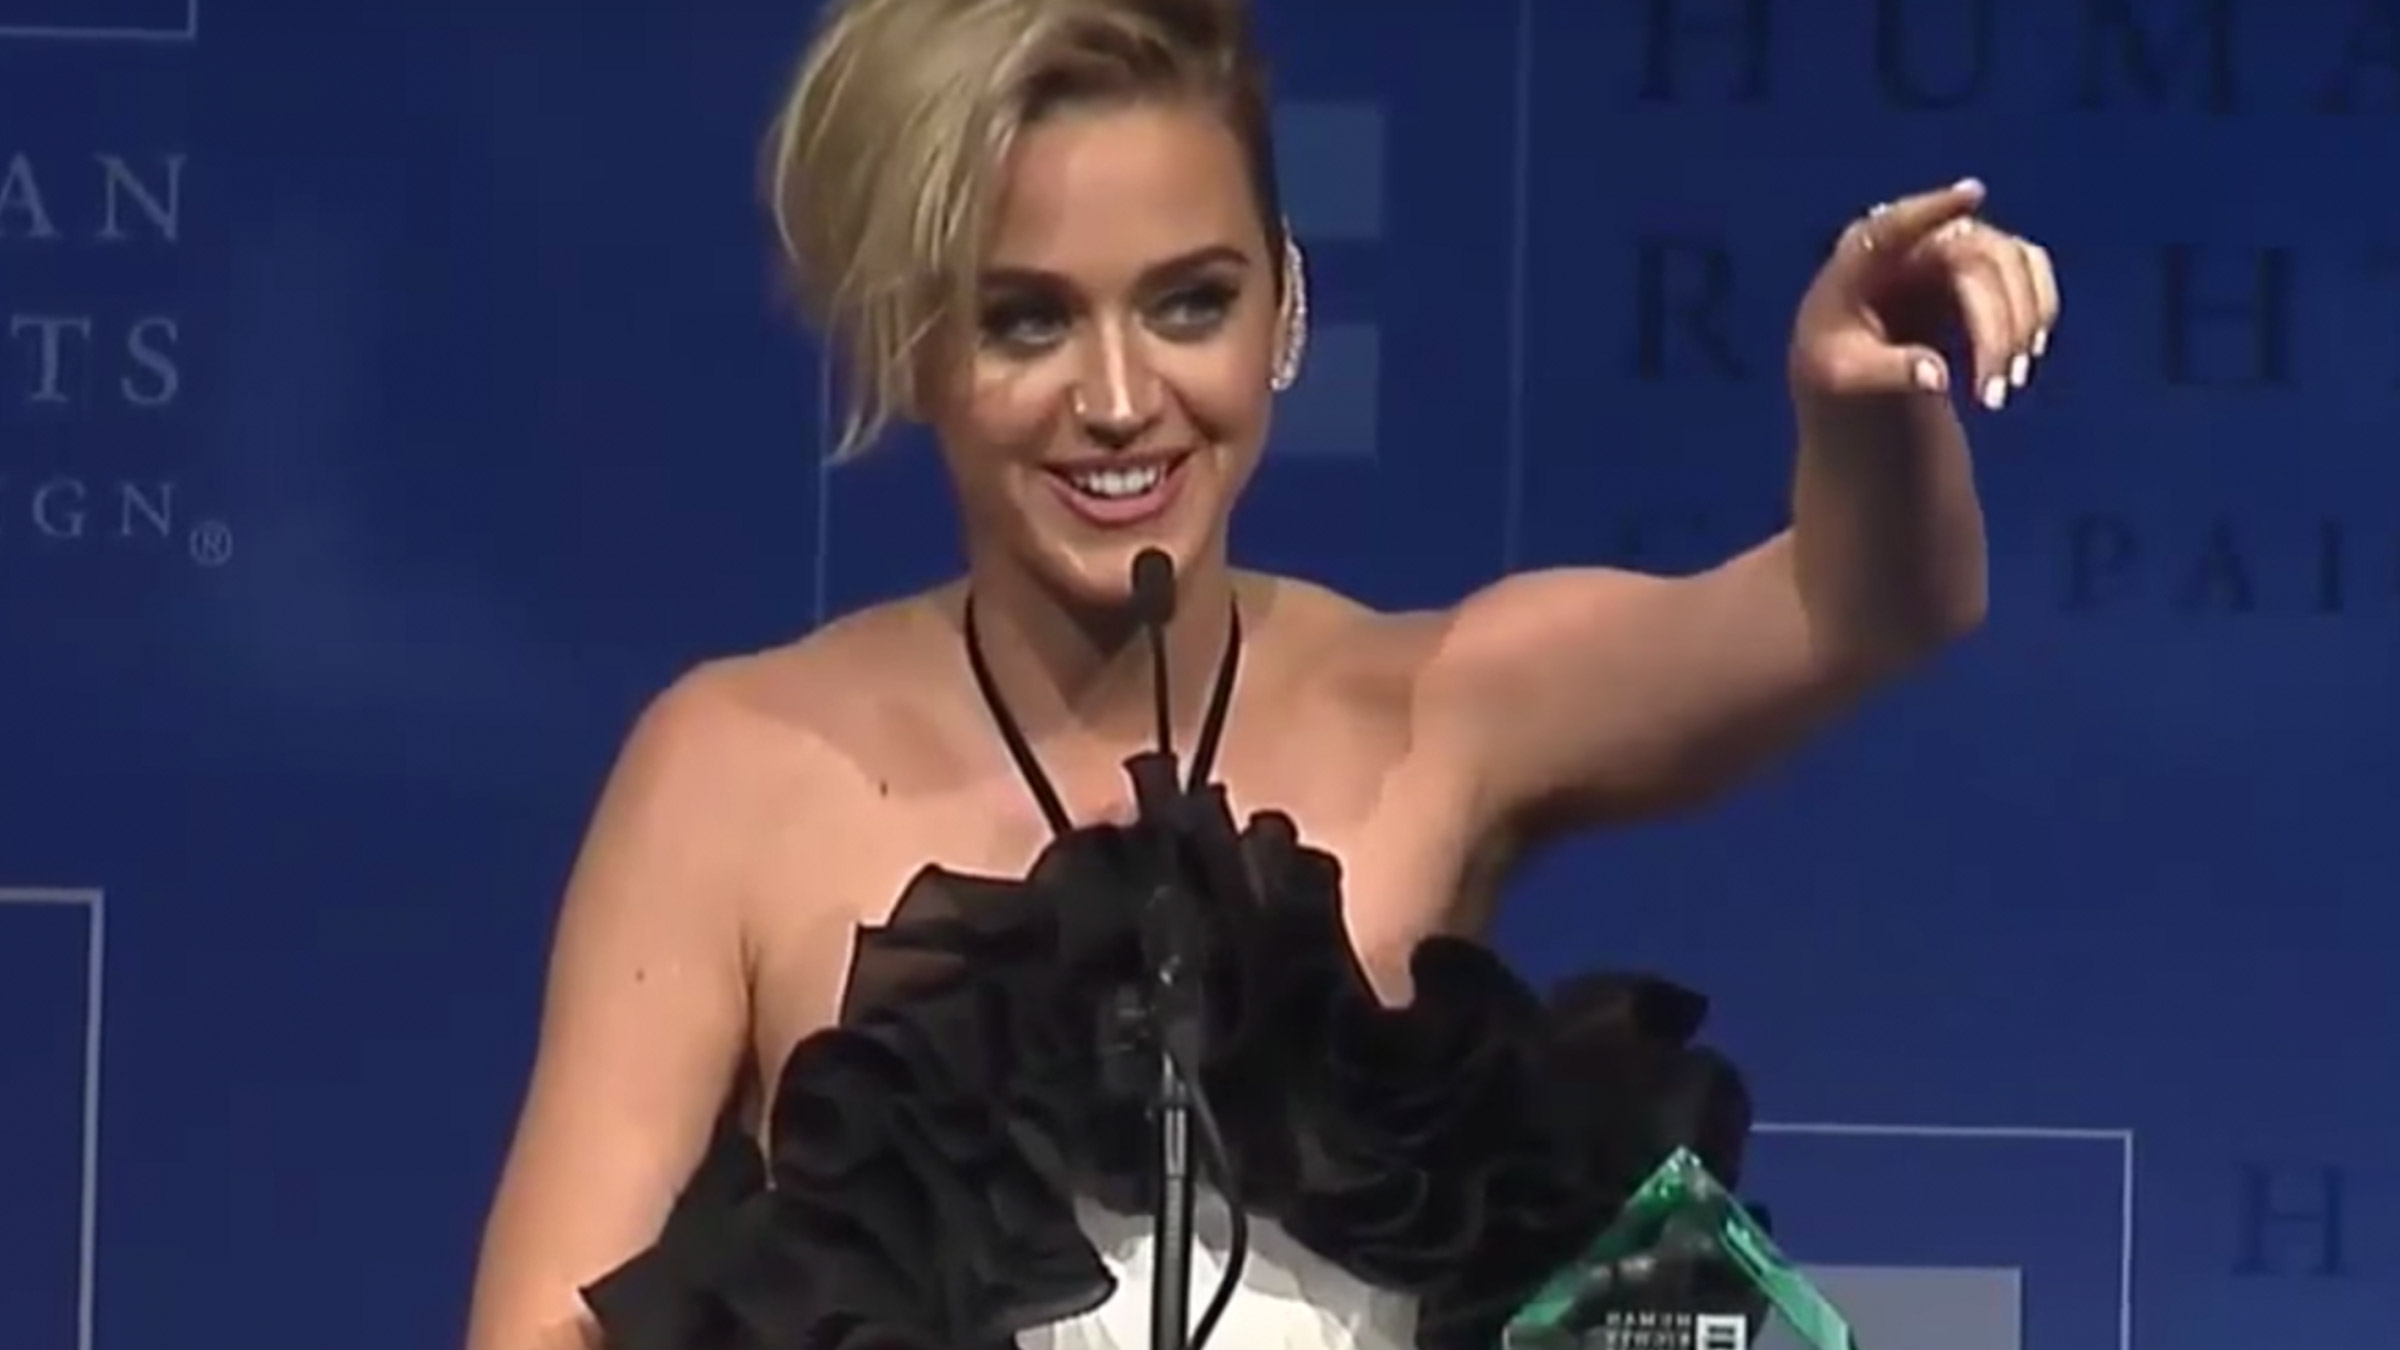 Teaser katy perry award